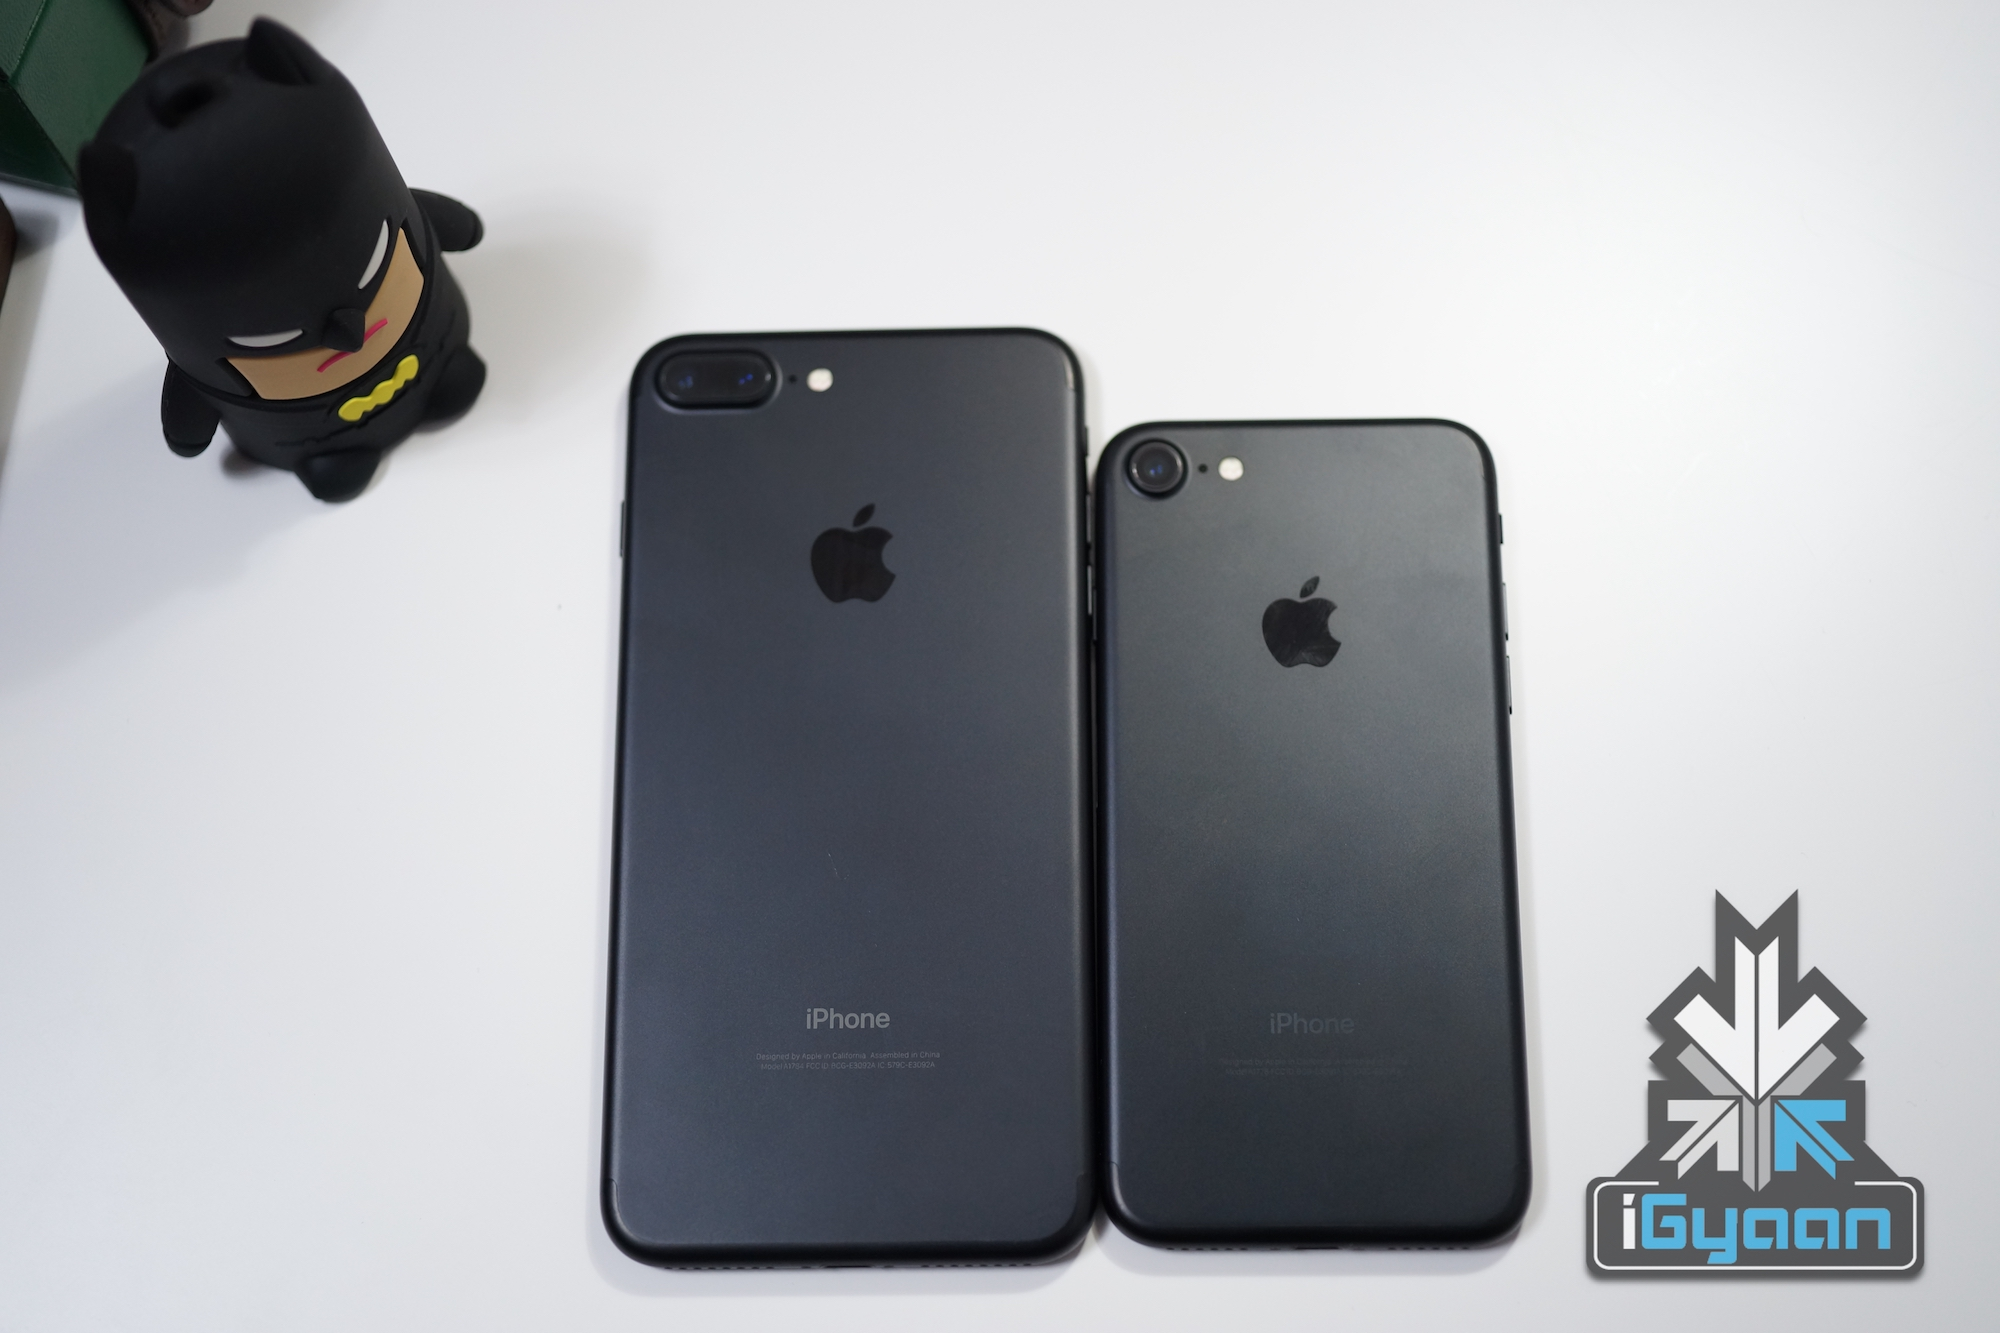 apple-iphone-7-and-iphone-7-plus-igyaan-13